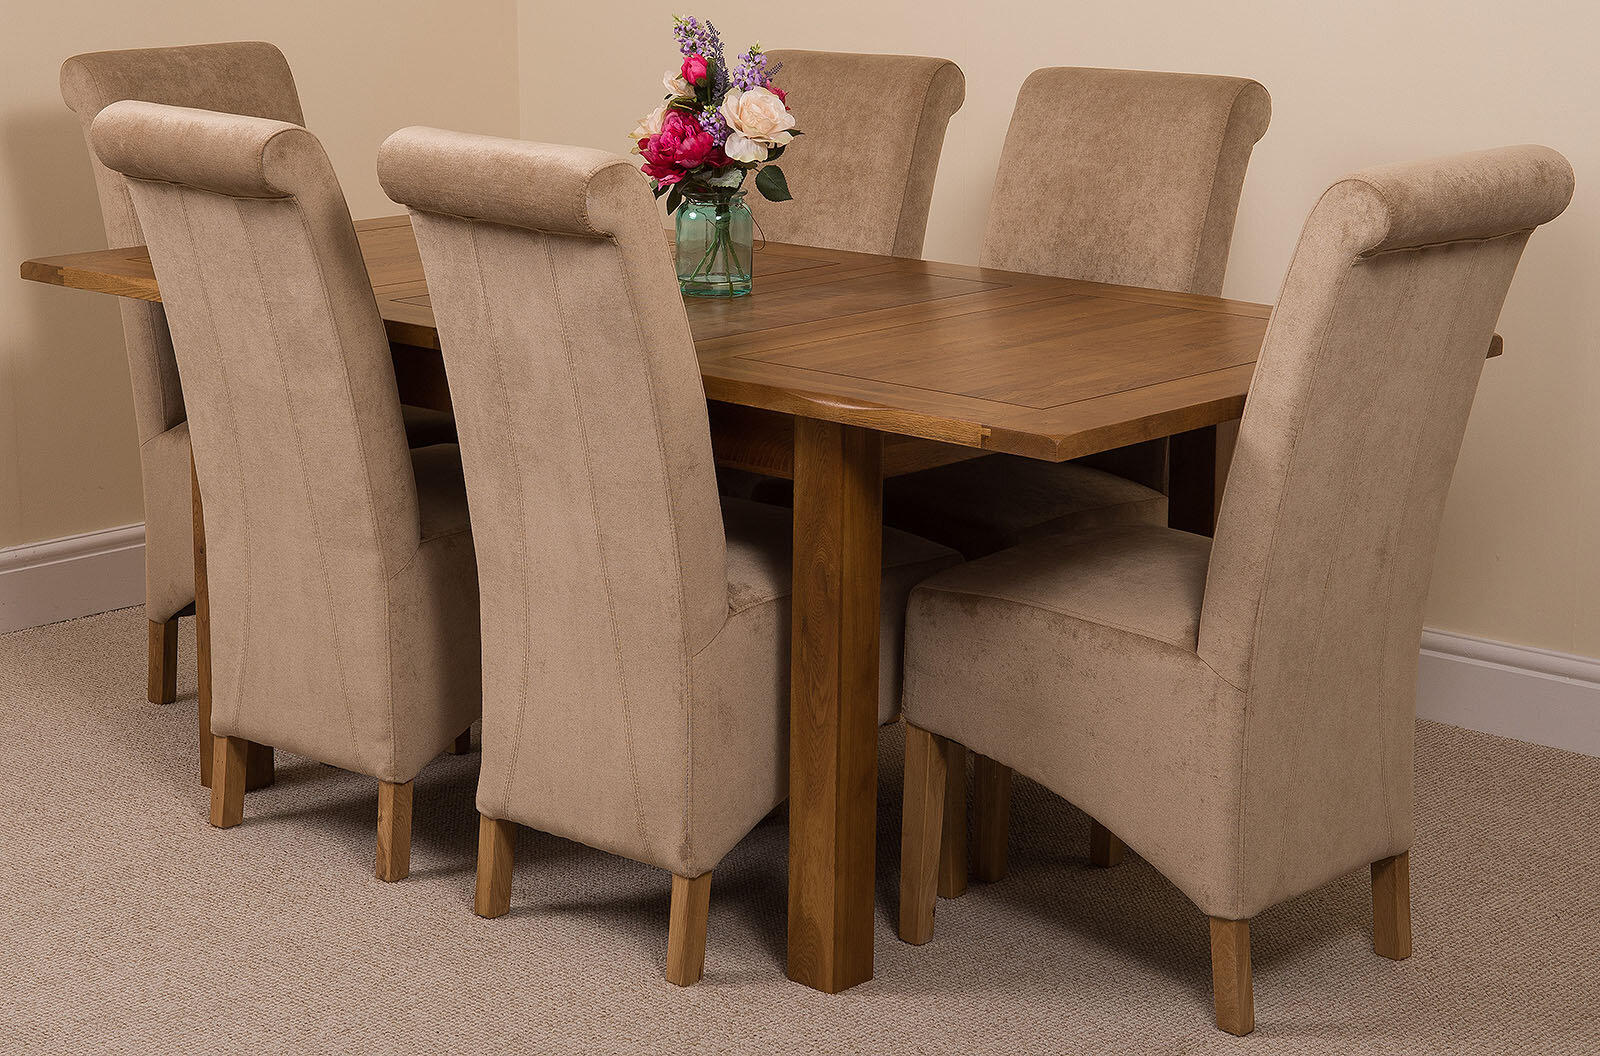 Red Barrel Studio Monroeville Solid Oak Dining Table With 6 Montana